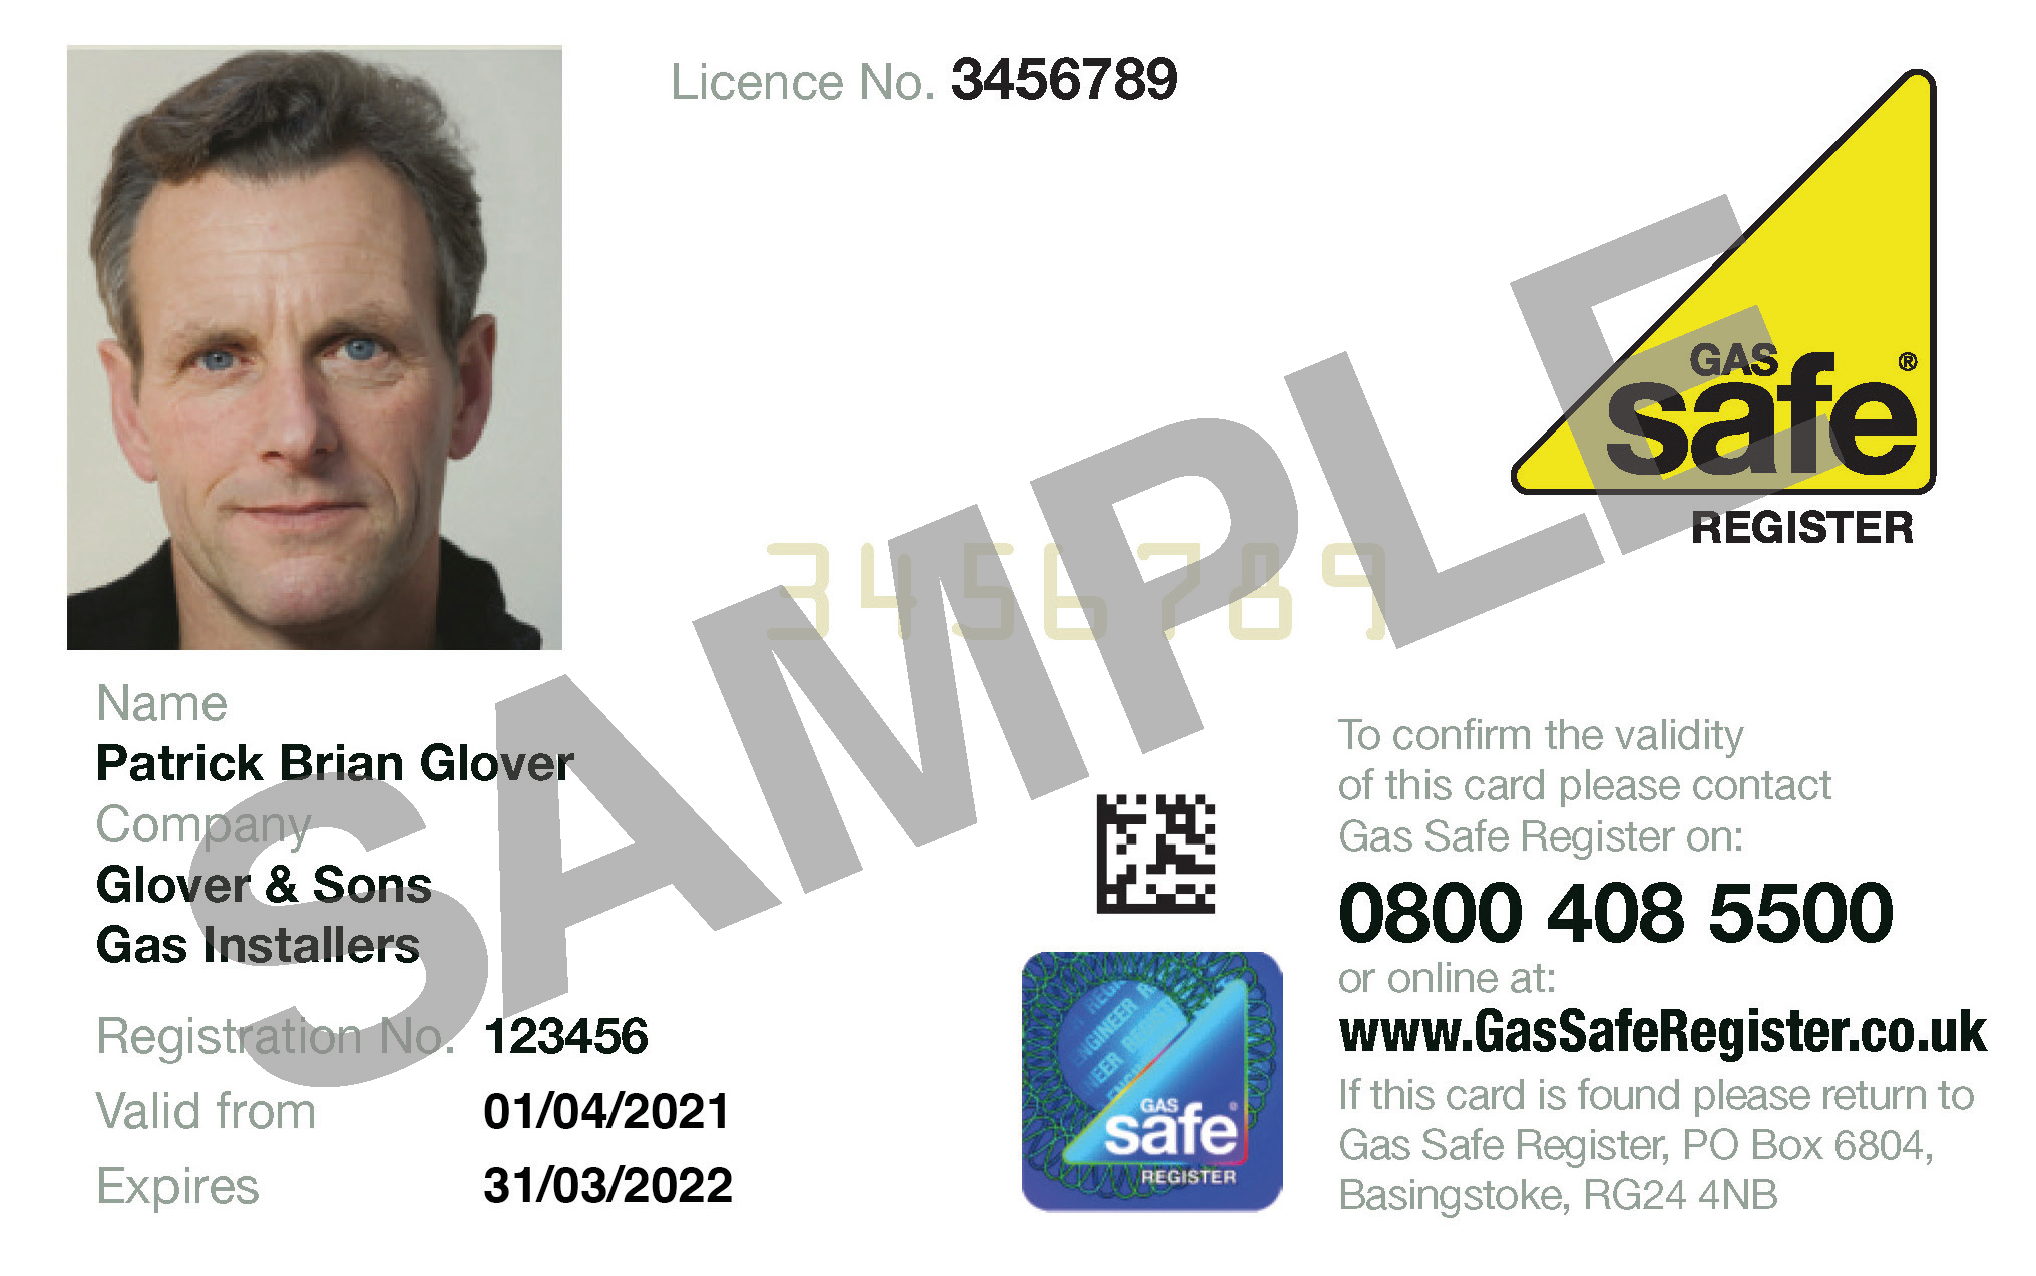 Example of the front of a Gas Safe ID card.